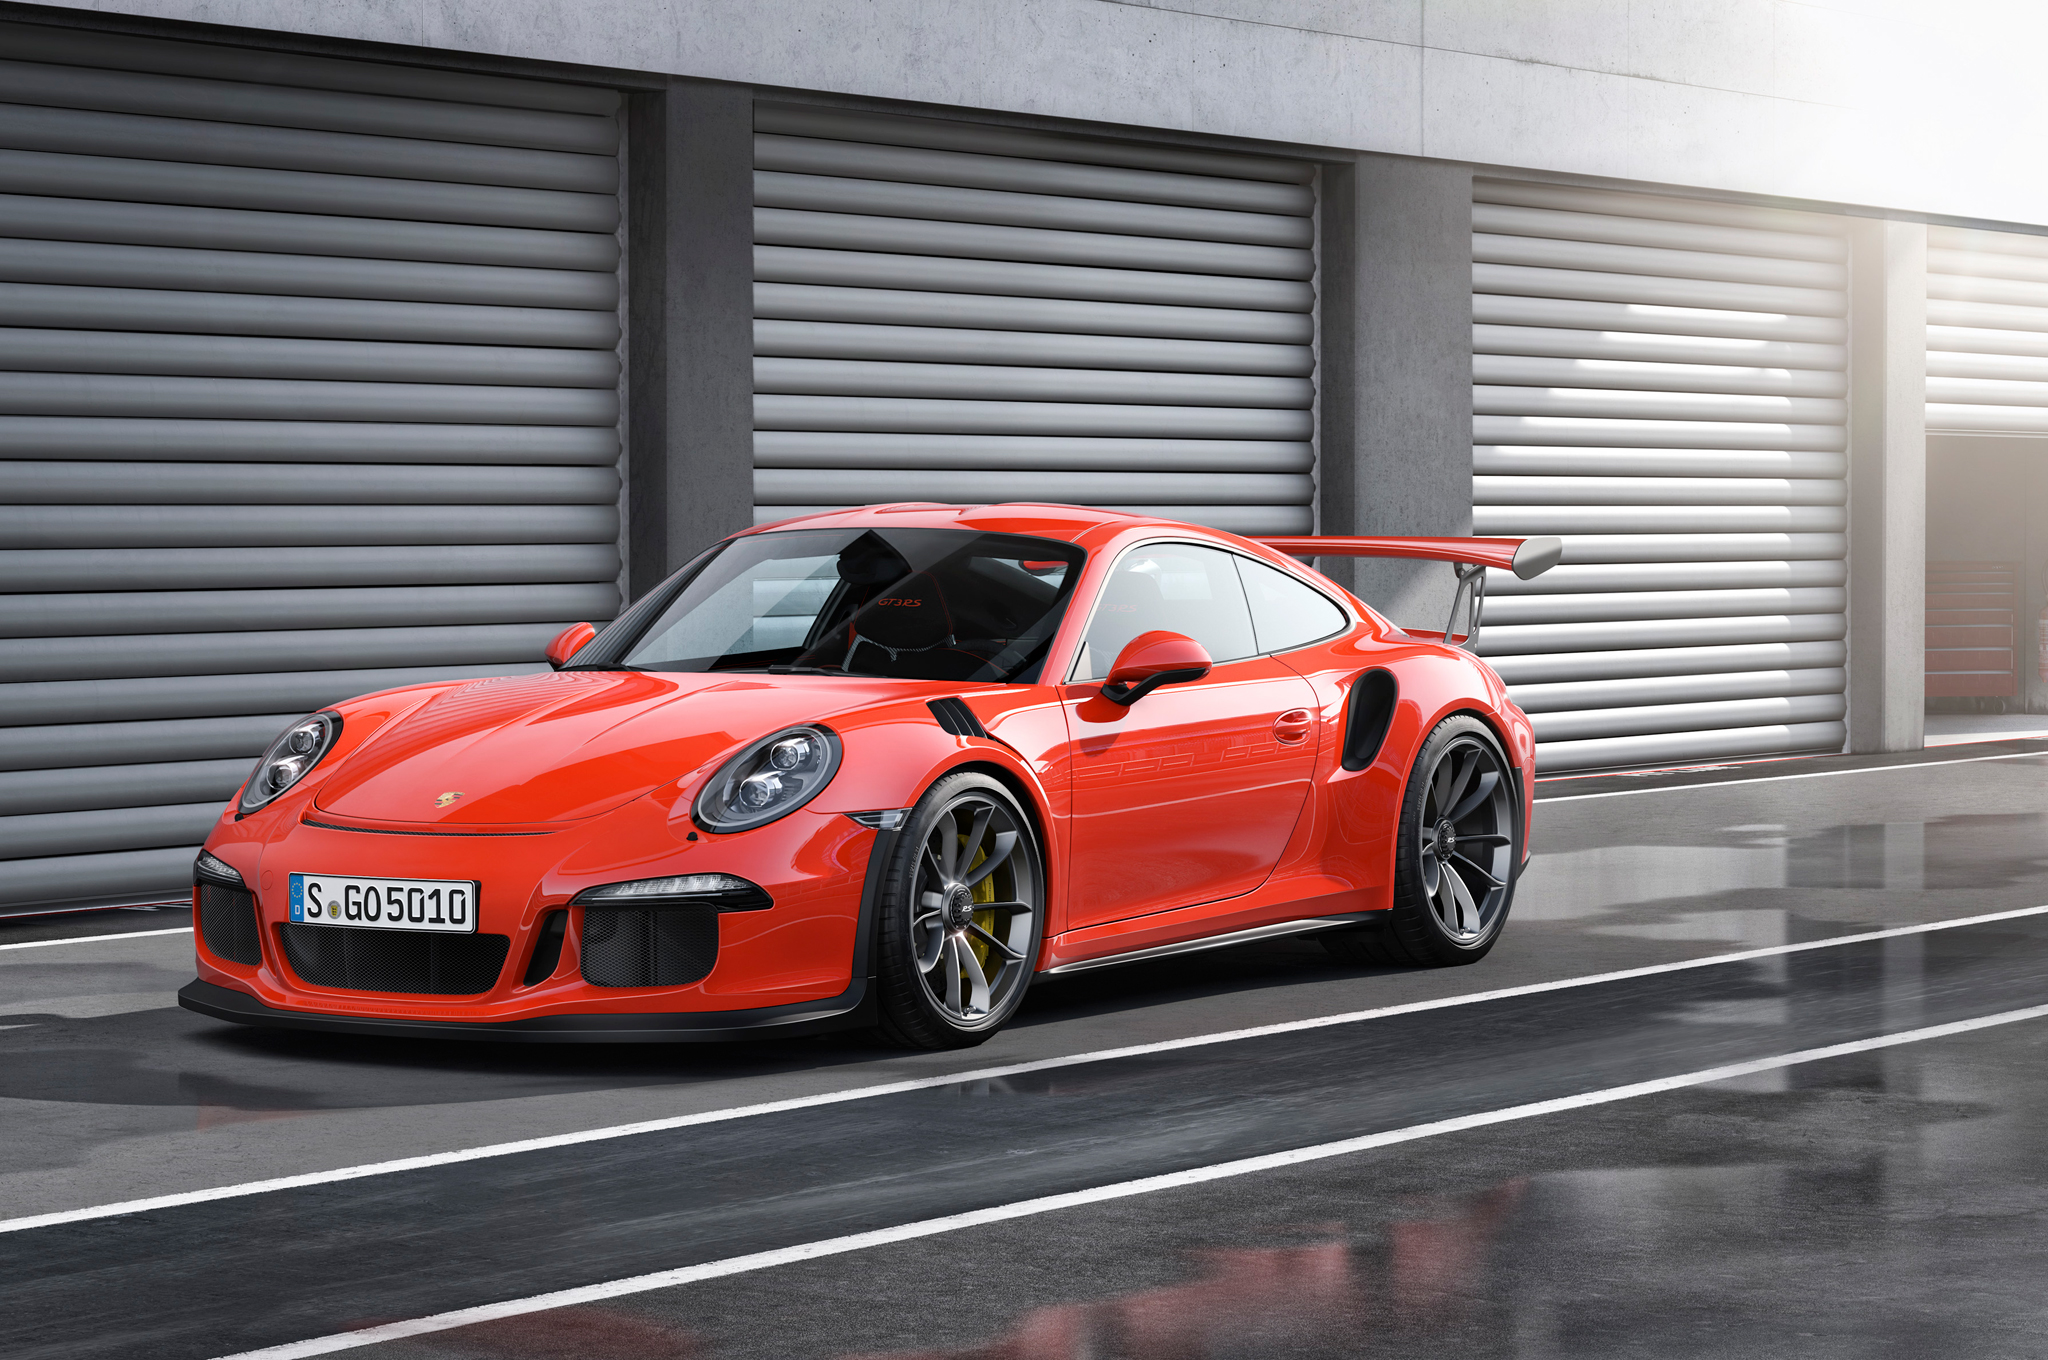 2016 Porsche 911 GT3 RS Arrives in US This July With 500 HP Photo 2048x1360